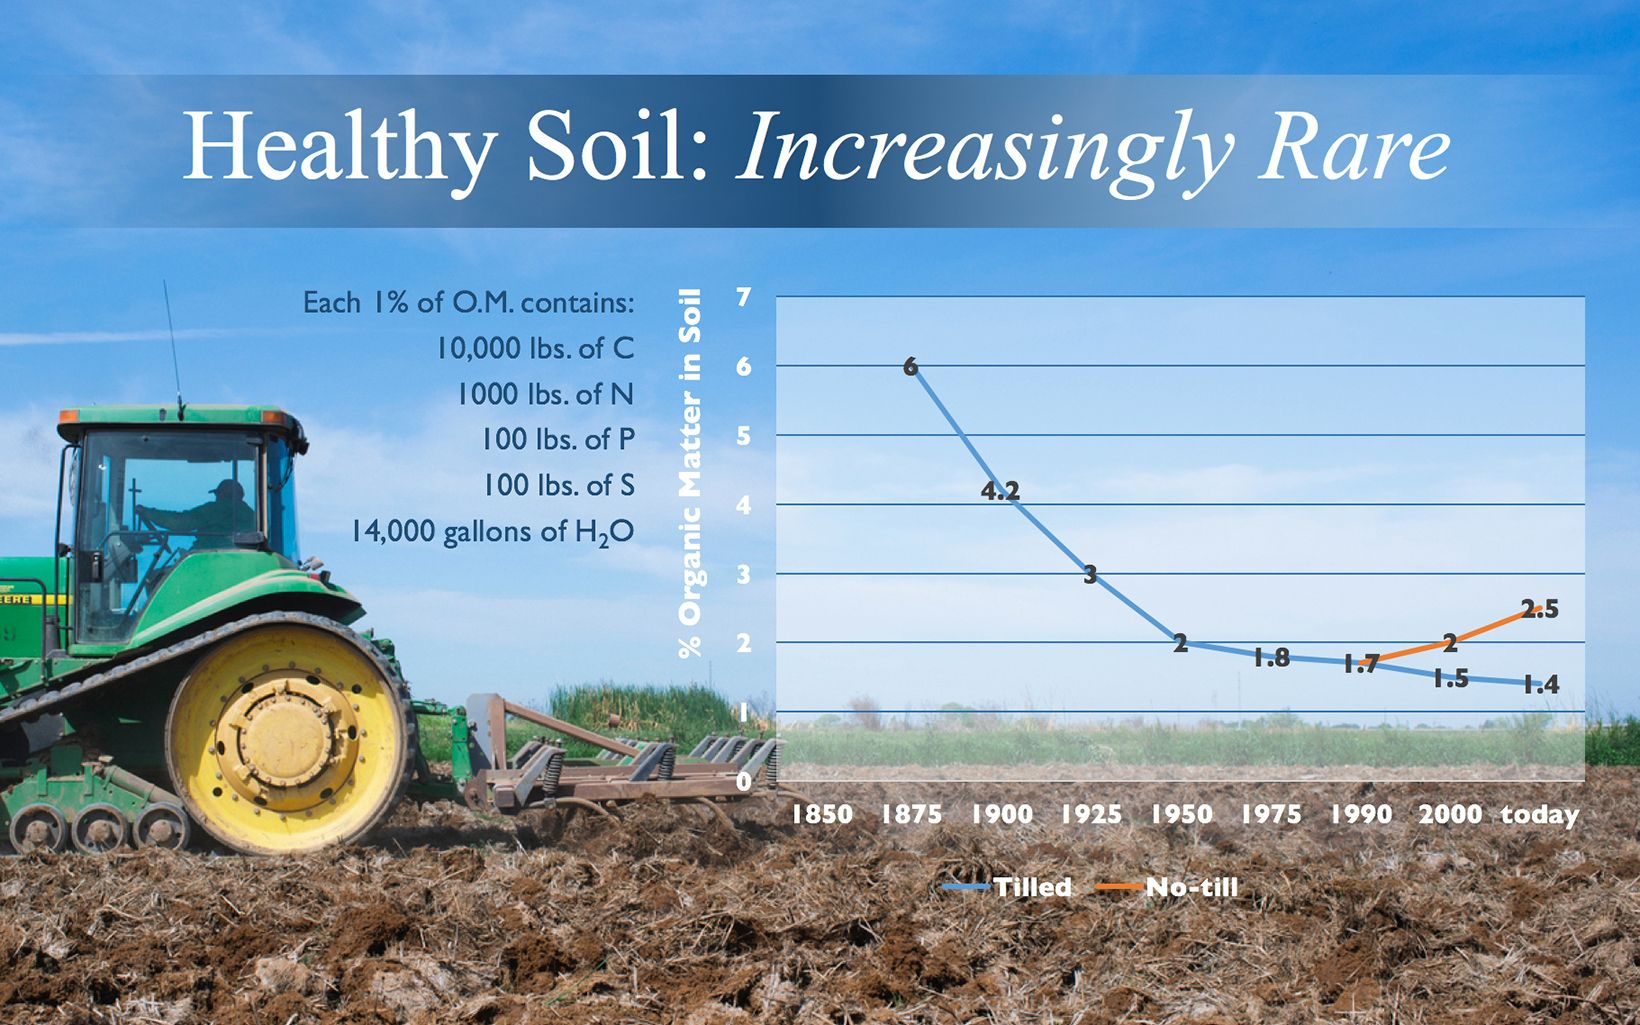 Infographic: reThink Soil Roadmap - Healthy Soil, Increasingly Rare